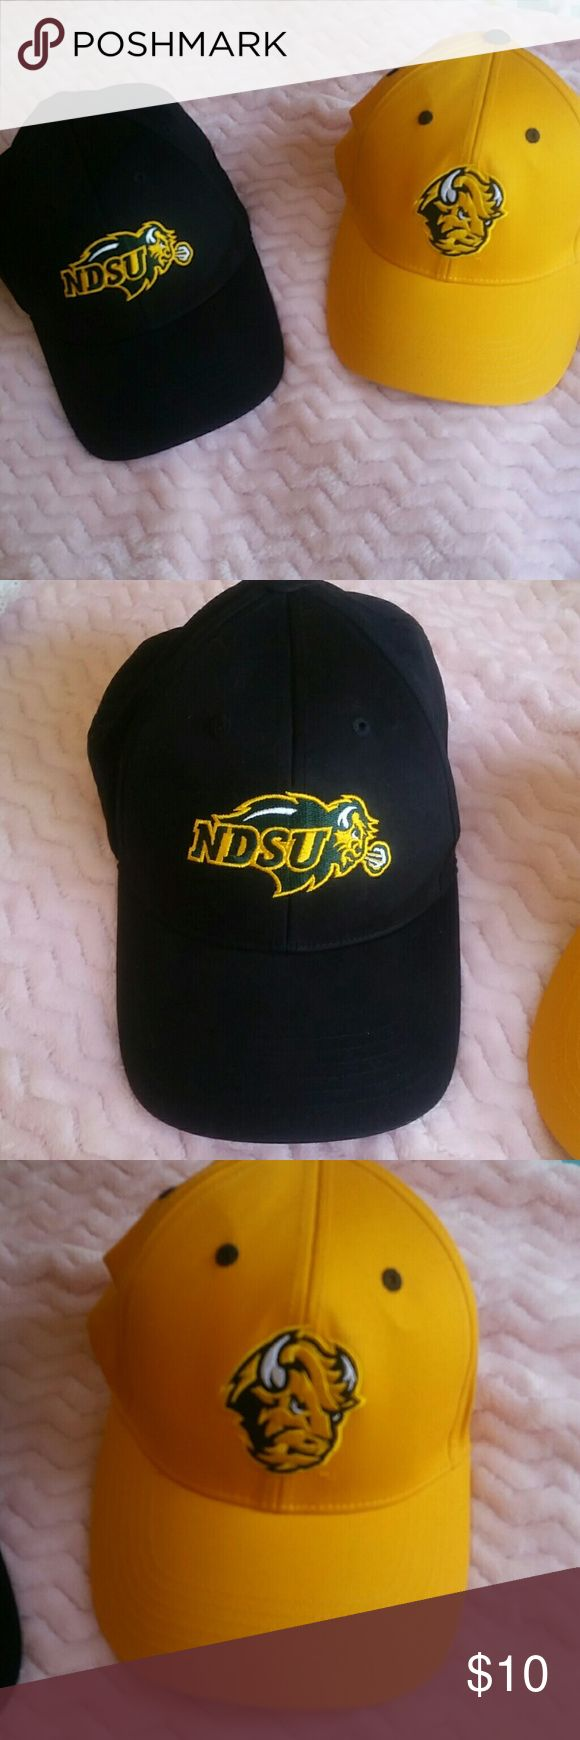 NDSU baseball hat set I'm willing to do these as a set or separately   velcro back, never worn Accessories Hats